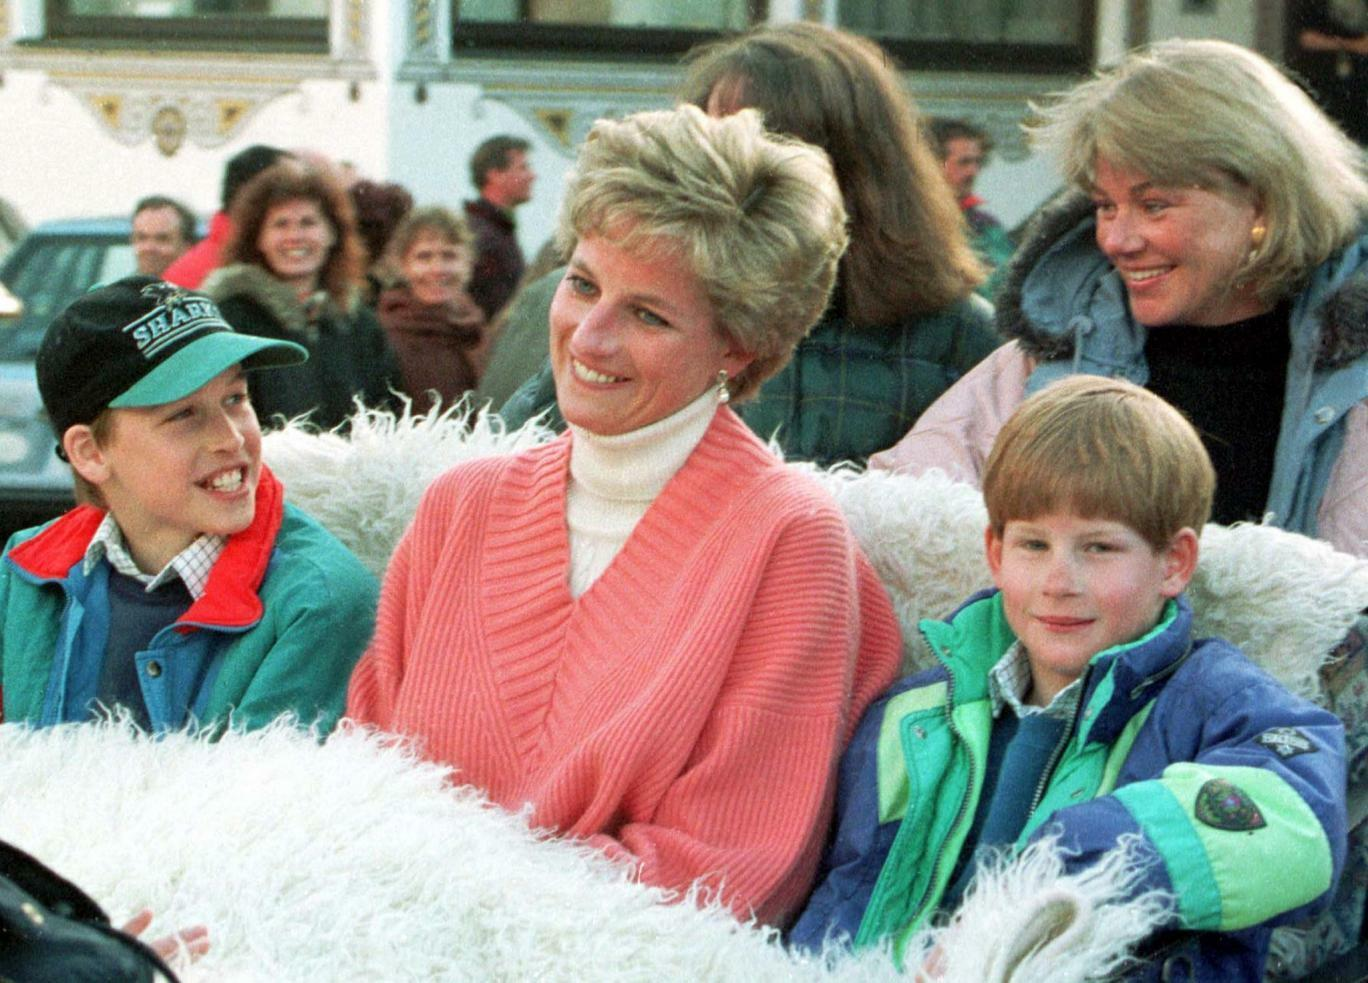 Diana beams as she sits with William and Harry.